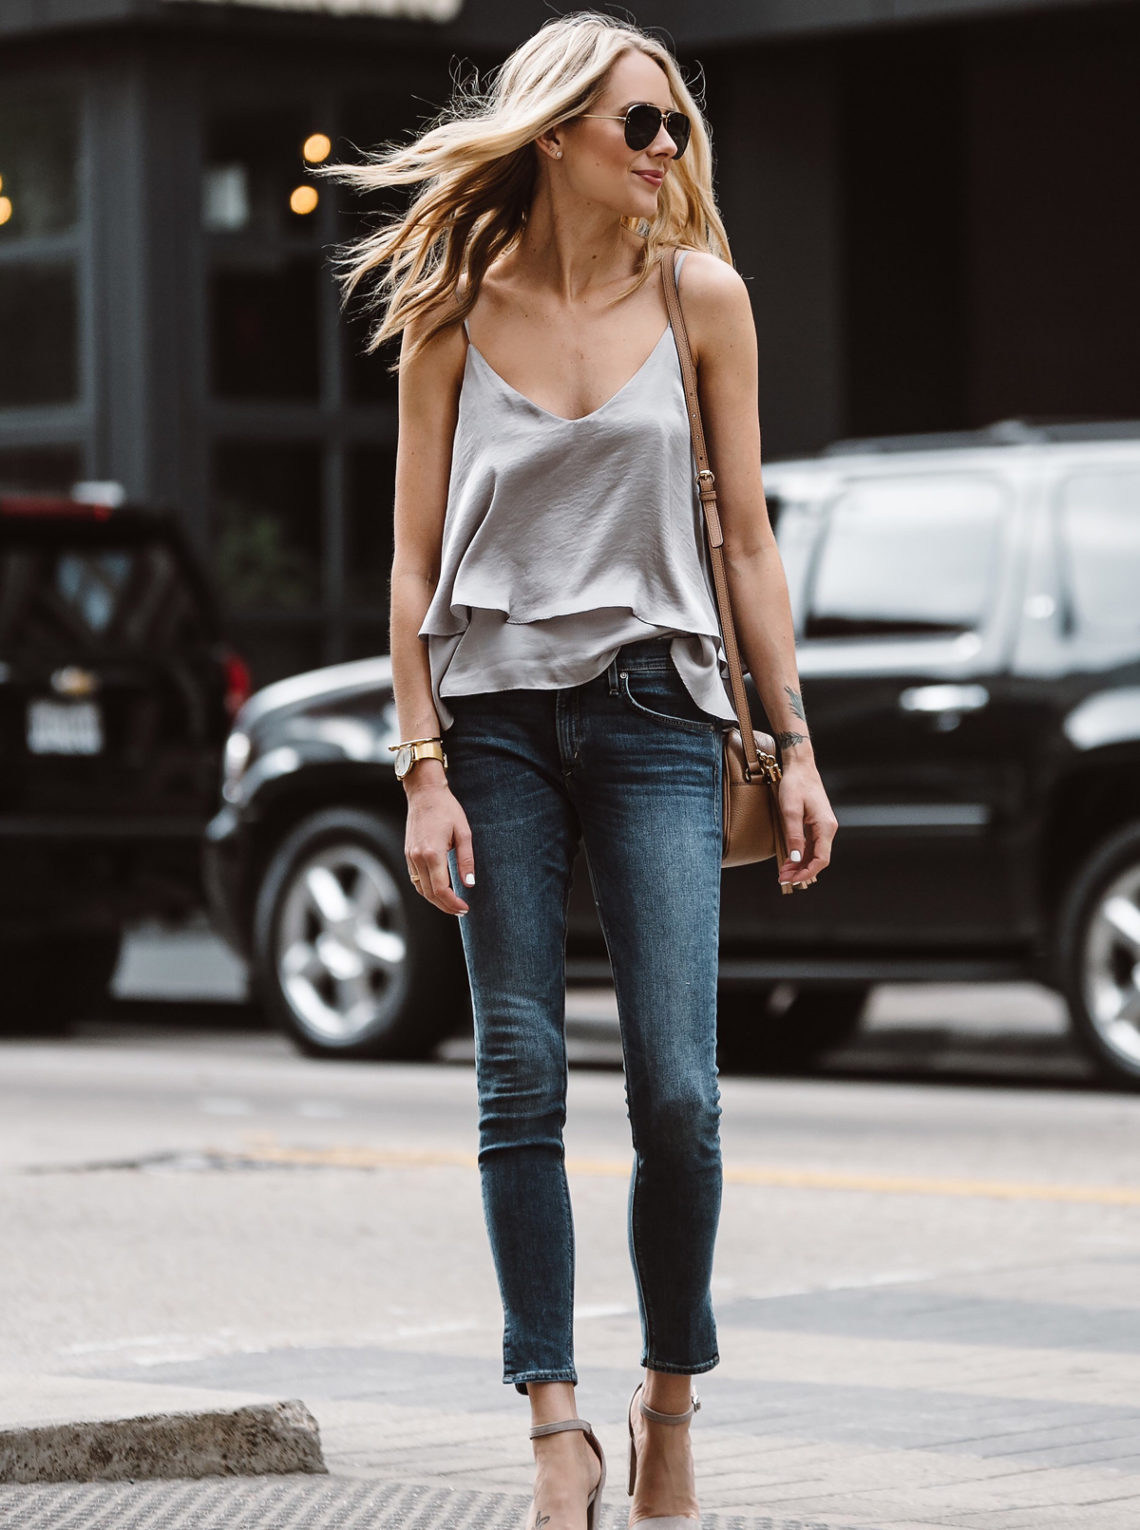 Fashion Jackson, Dallas Blogger, Fashion Blogger, Street Style, Grey Ruffle Cami, Split Hem Denim Skinny Jeans, Steve Madden Carrson Ankle Strap Heeled Sandals, Gucci Soho Disco Handbag